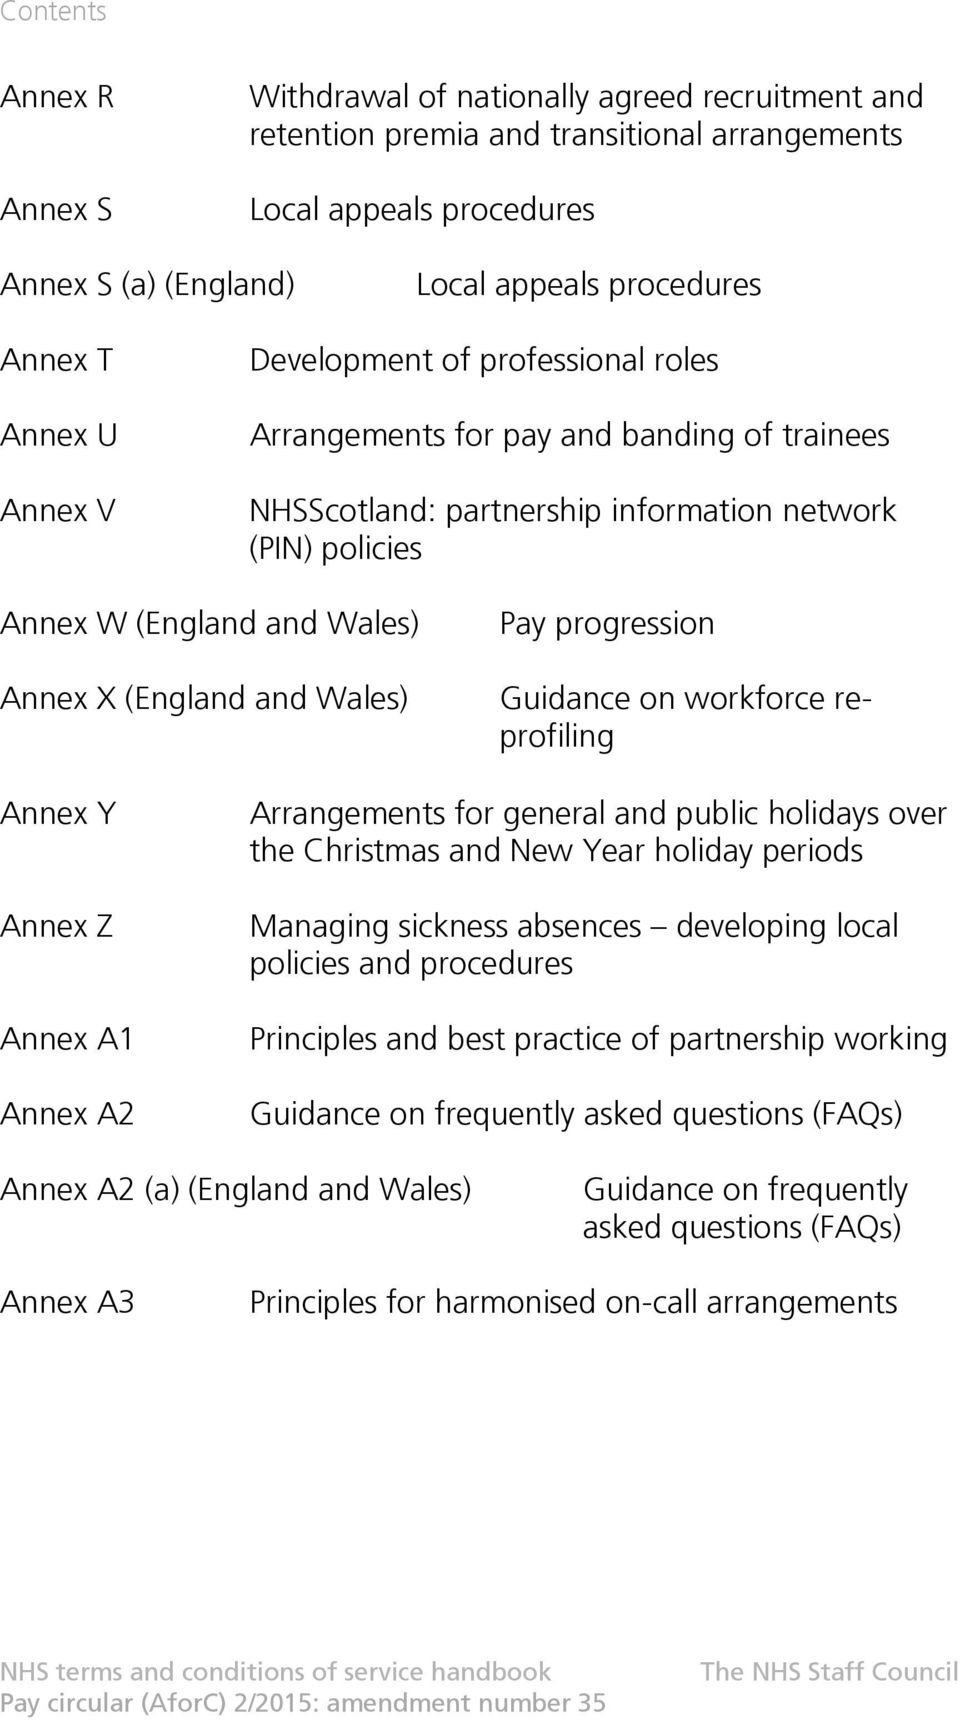 and Wales) Pay progression Guidance on workforce reprofiling Annex Y Annex Z Annex A1 Annex A2 Arrangements for general and public holidays over the Christmas and New Year holiday periods Managing